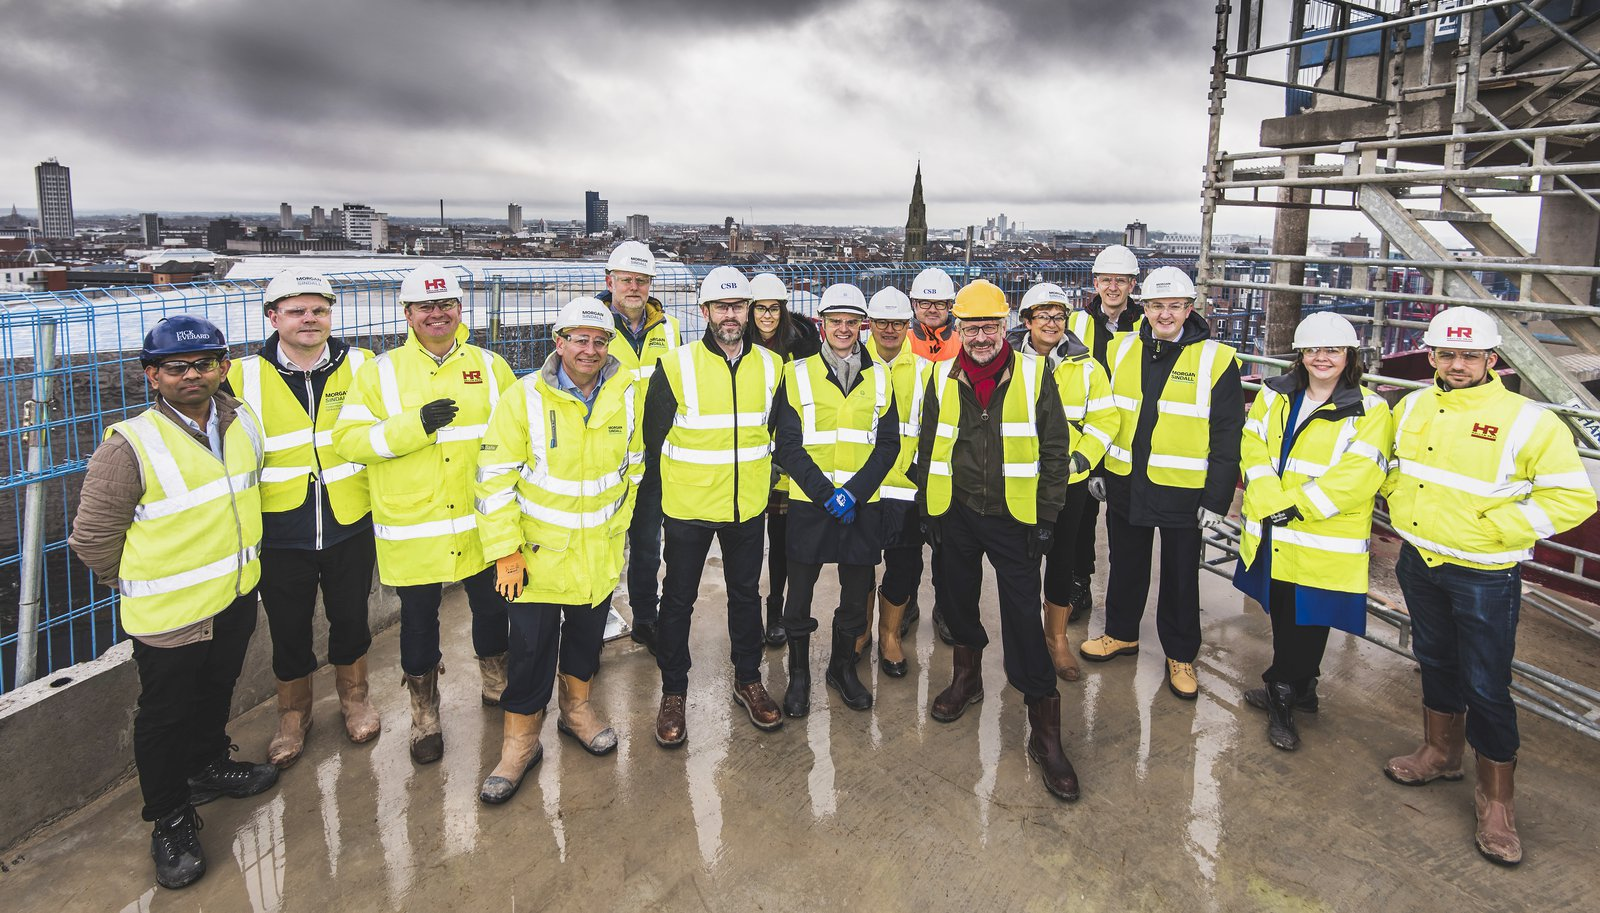 Morgan Sindall Construction Morgan Sindall Construction Team celebrates topping out at £50 million mixed-use regeneration scheme